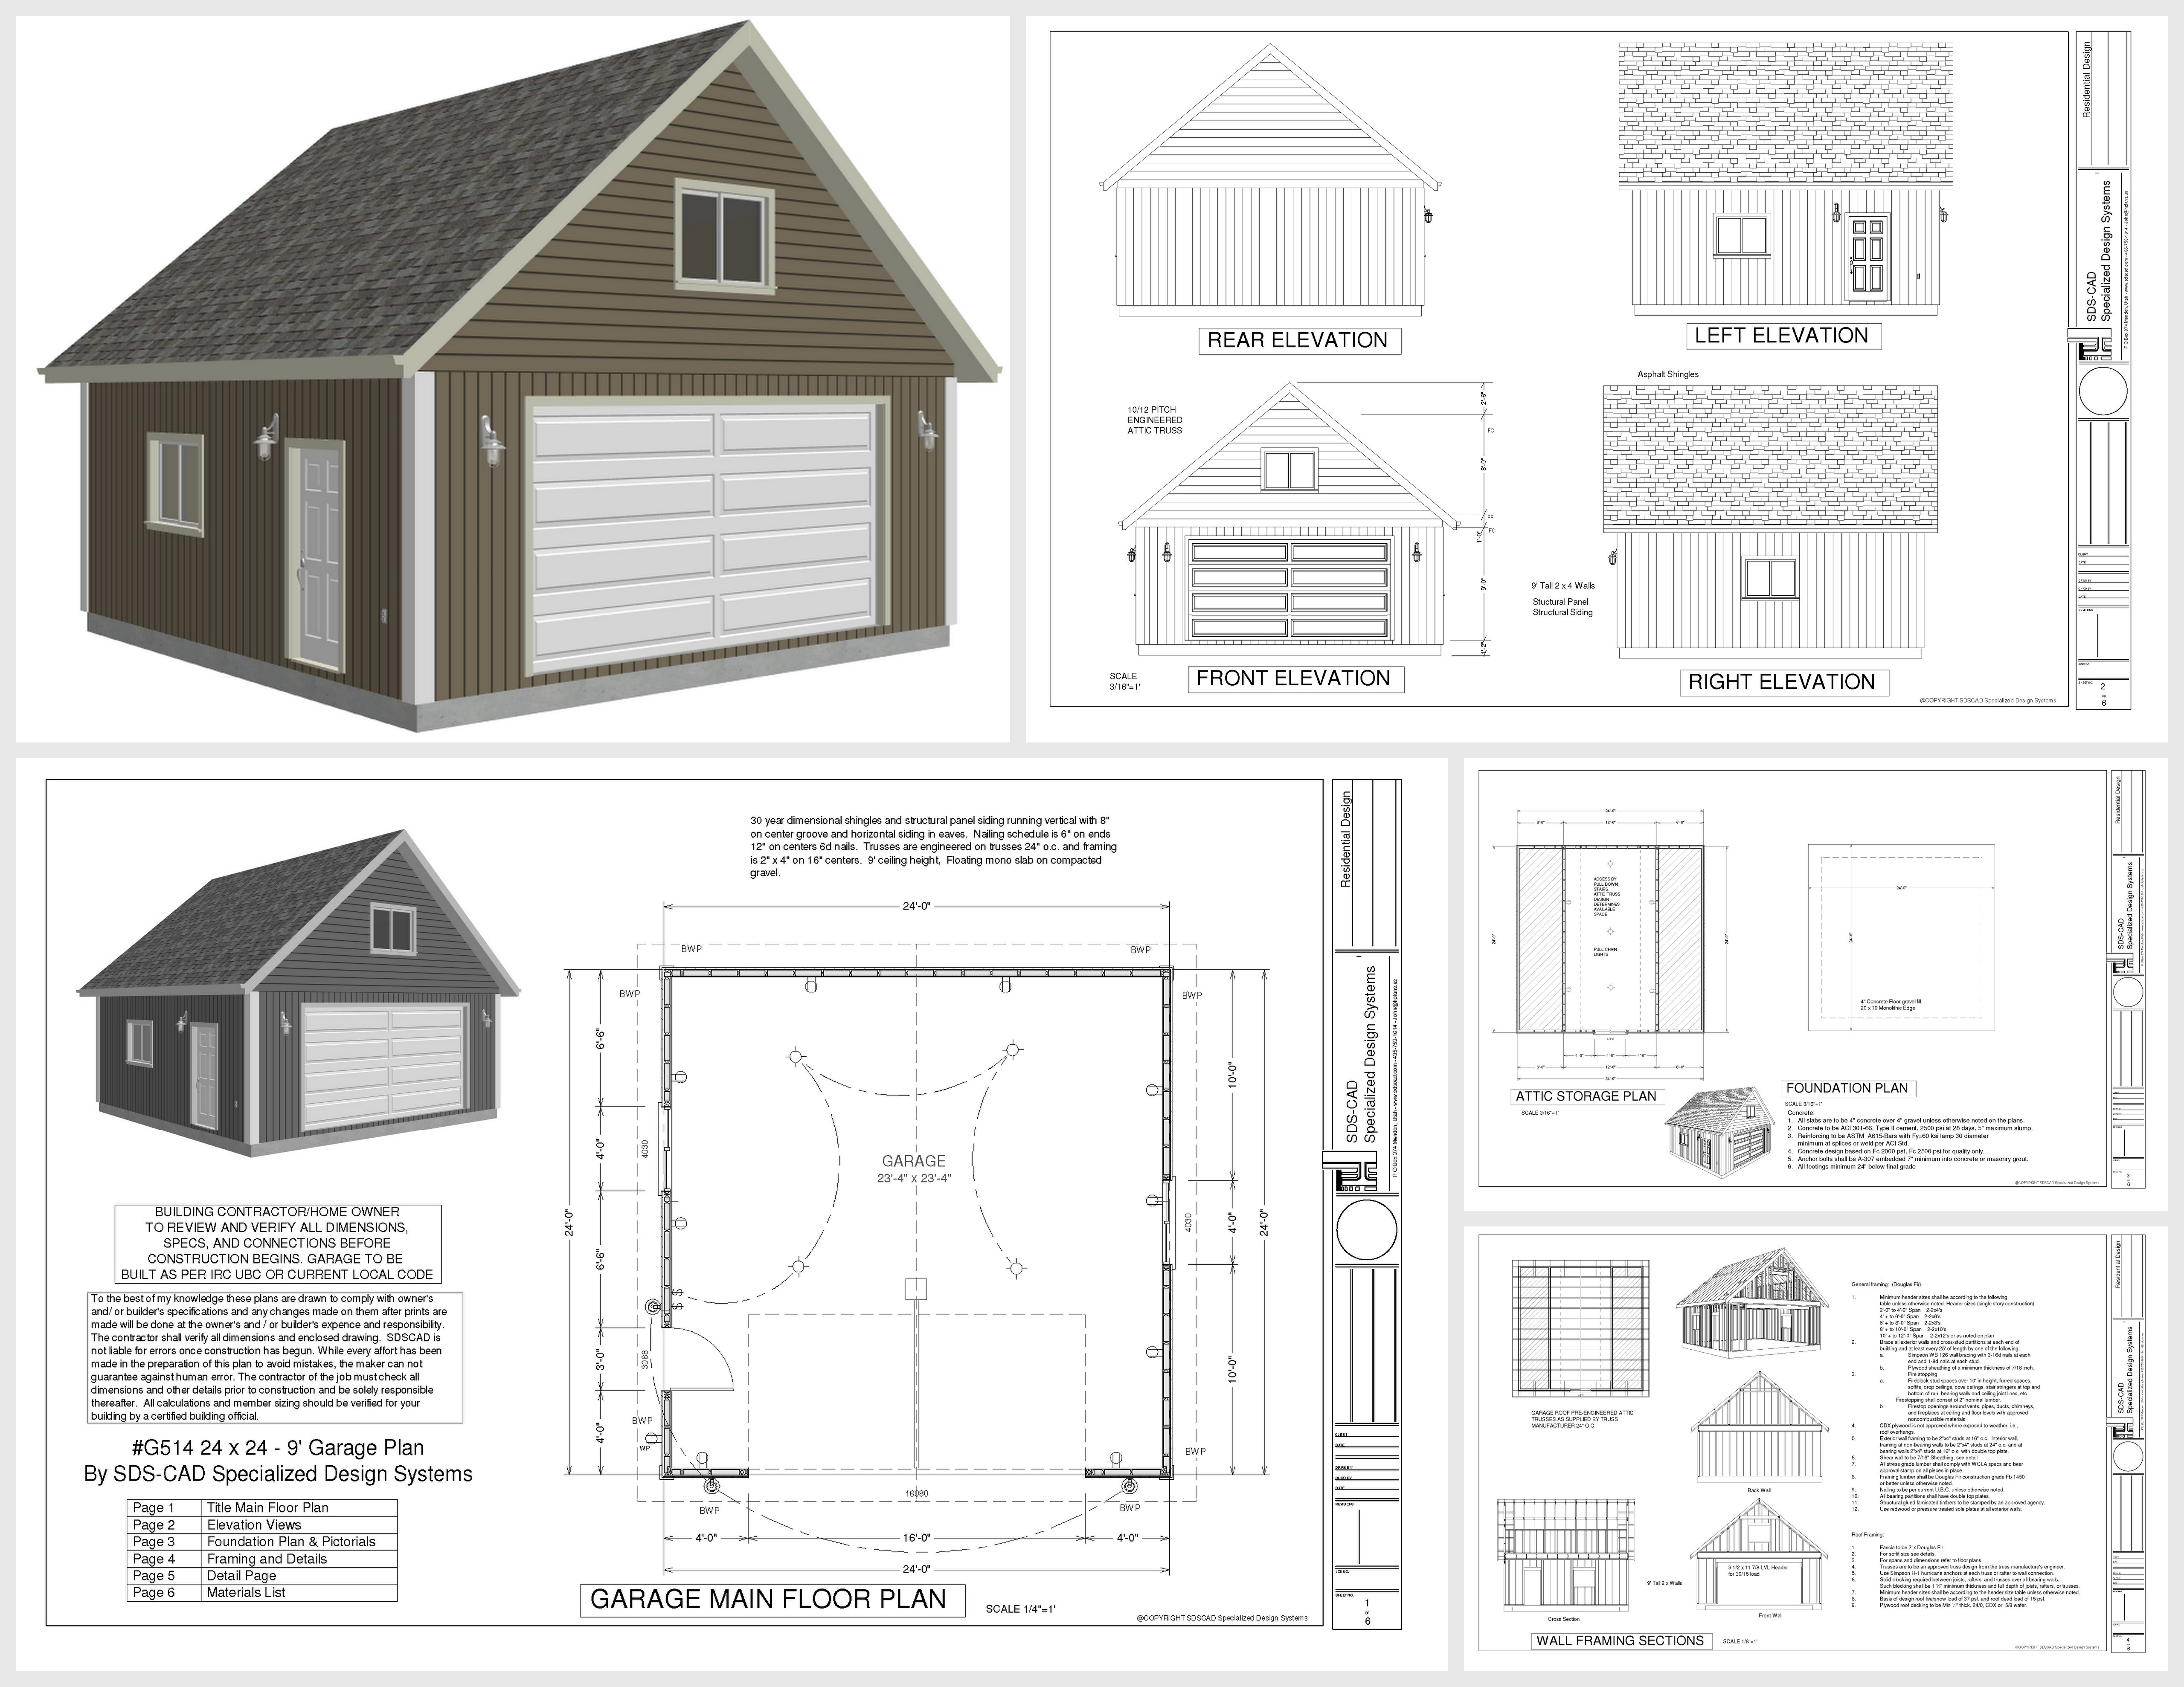 Complete House Plan G514 24 X 24 X 9 Loft Garage Plans In Pdf And Dwg Guest